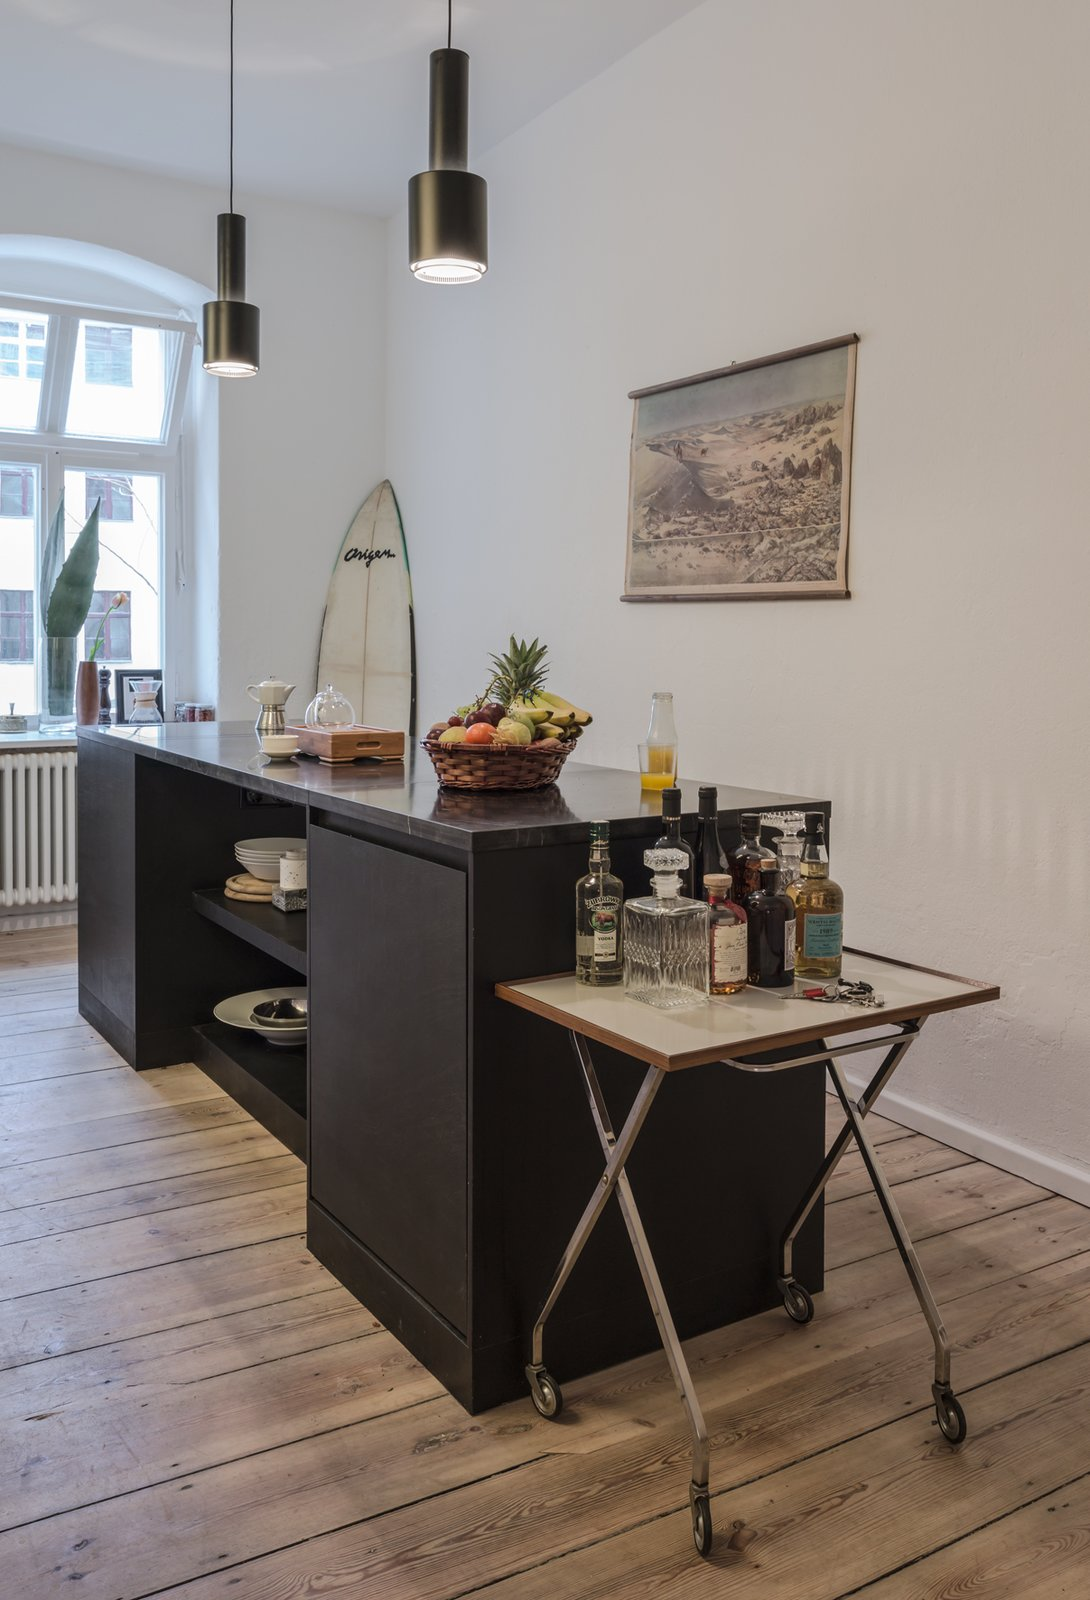 Kitchen of the Freunde von Freunden X Vitra Apartment  Completed in early March, the apartment has already been used for commercial shoots, as a showroom for press days, and for dinner among friends and colleagues.  Photo by Steve Herud  Photo 8 of 9 in Freunde von Freunden and Vitra's Berlin Apartment